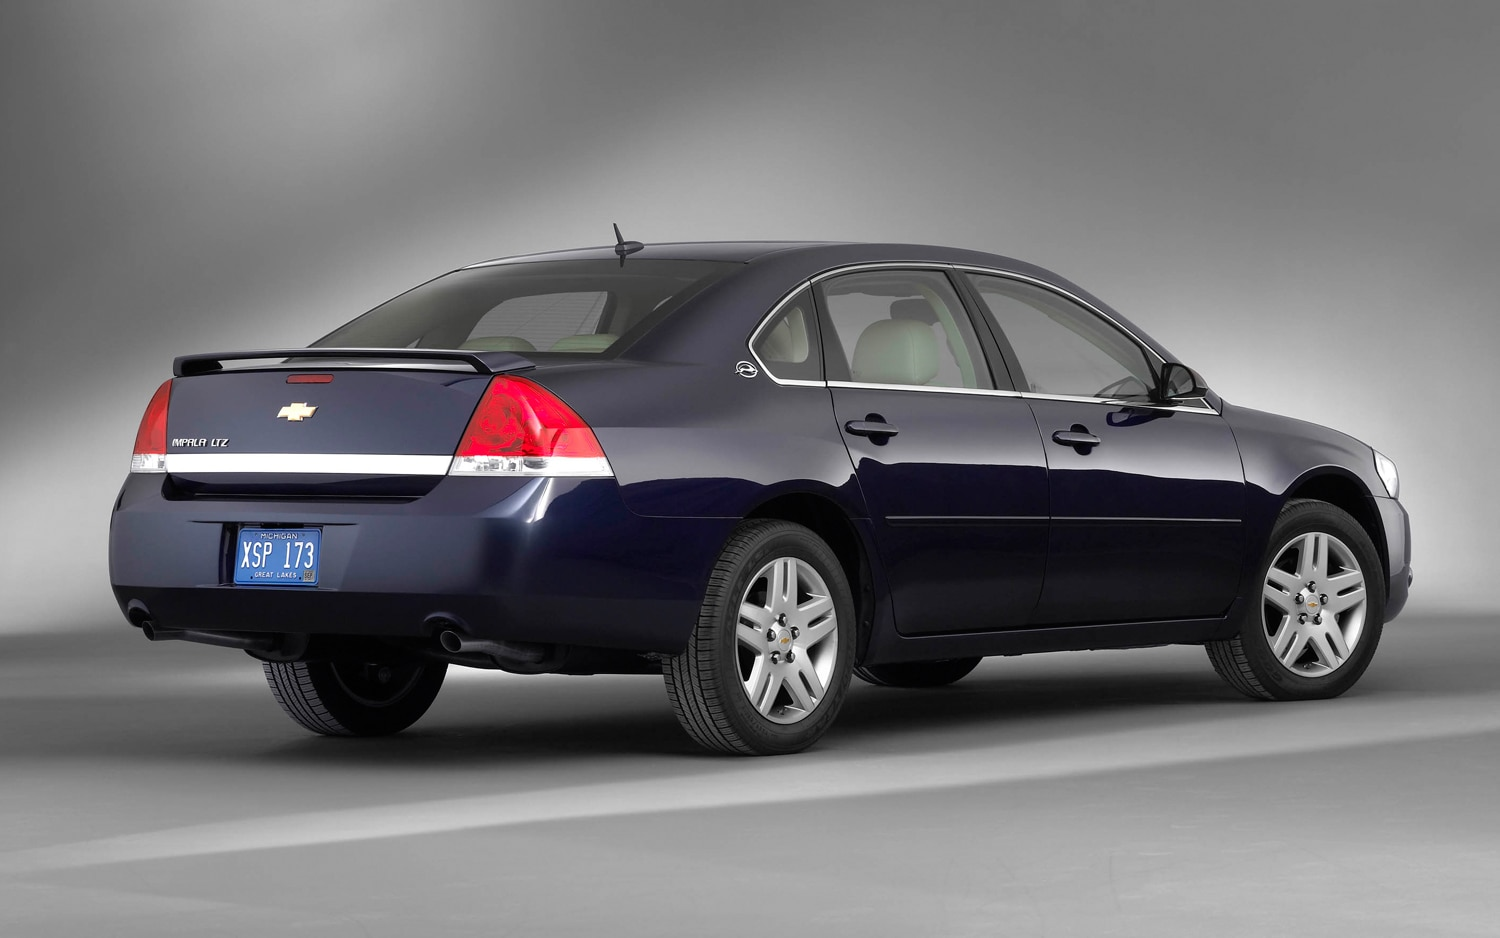 2007 2008 chevrolet impala owners suing gm over tire wear. Black Bedroom Furniture Sets. Home Design Ideas